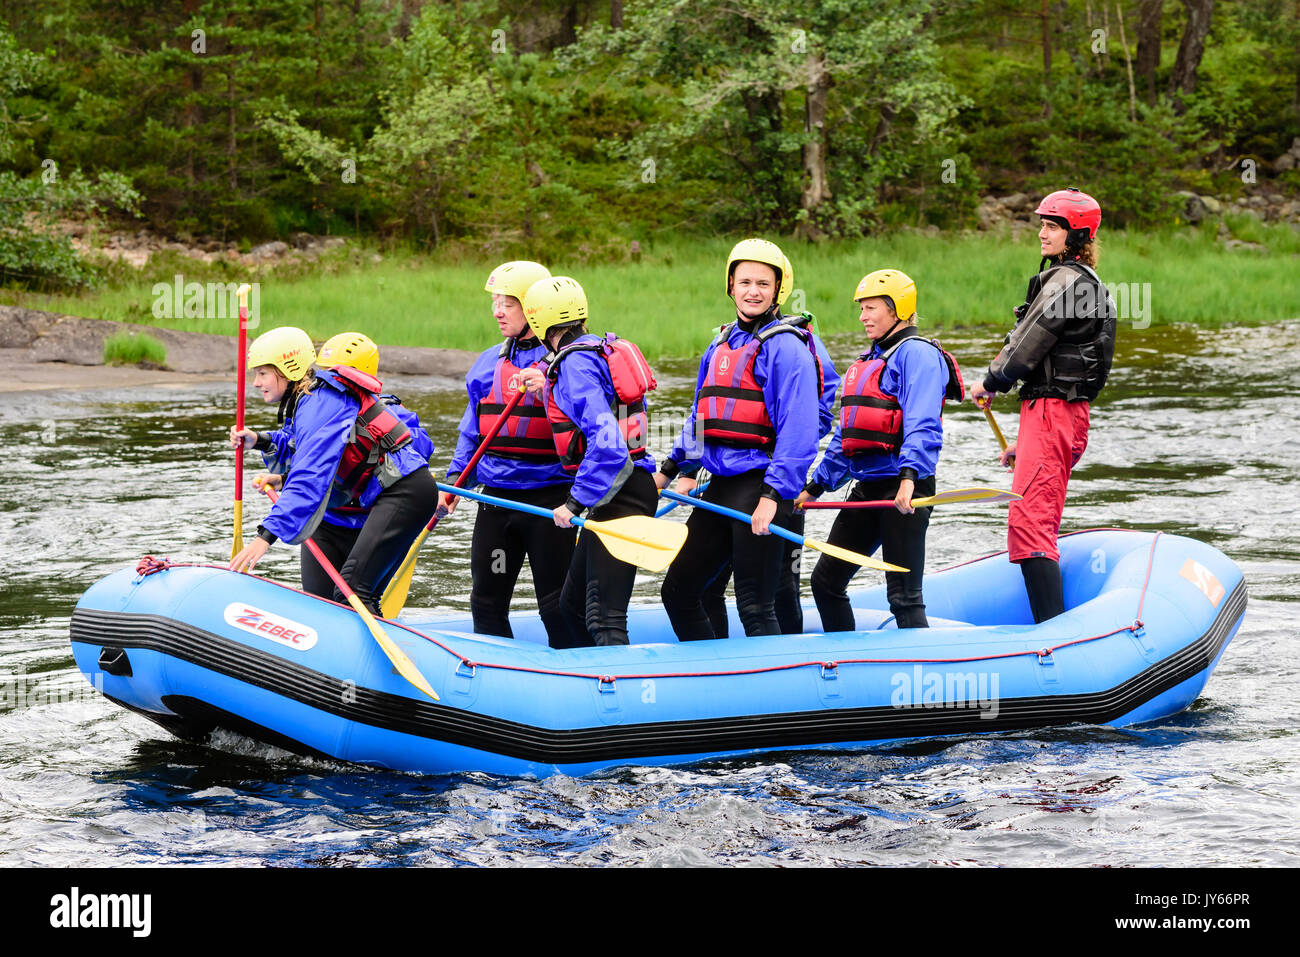 Byglandsfjord, Norway - August 1, 2017: Travel documentary of rafting group having an adventure on the river. Group standing in boat while in calm wat - Stock Image